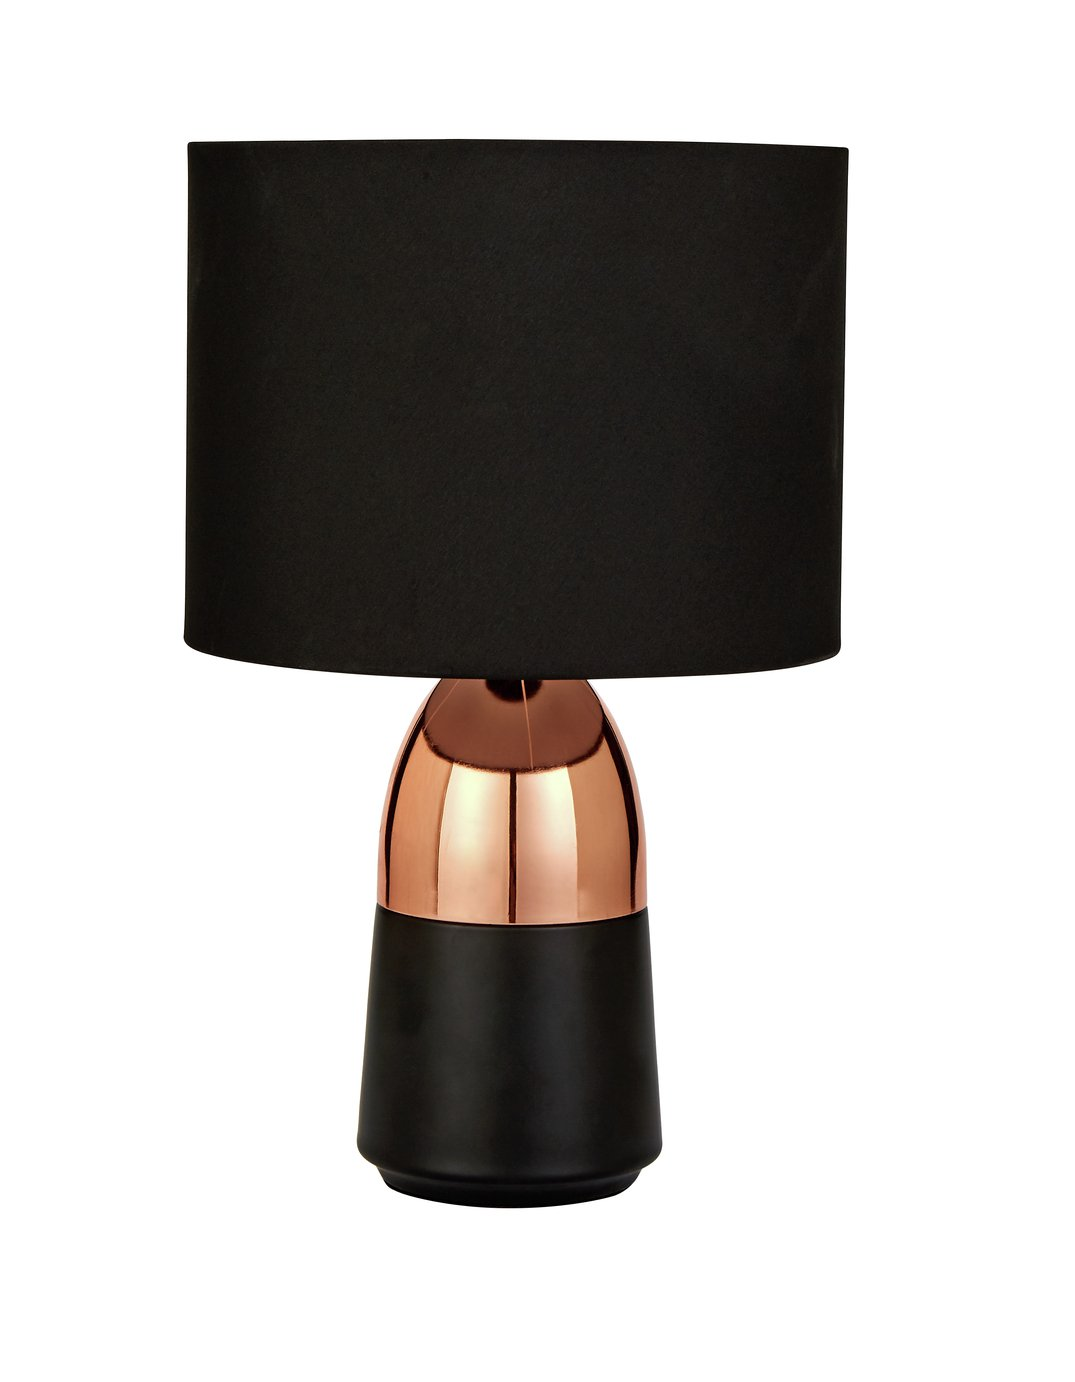 Argos Home Duno Black & Copper Touch Table Lamp